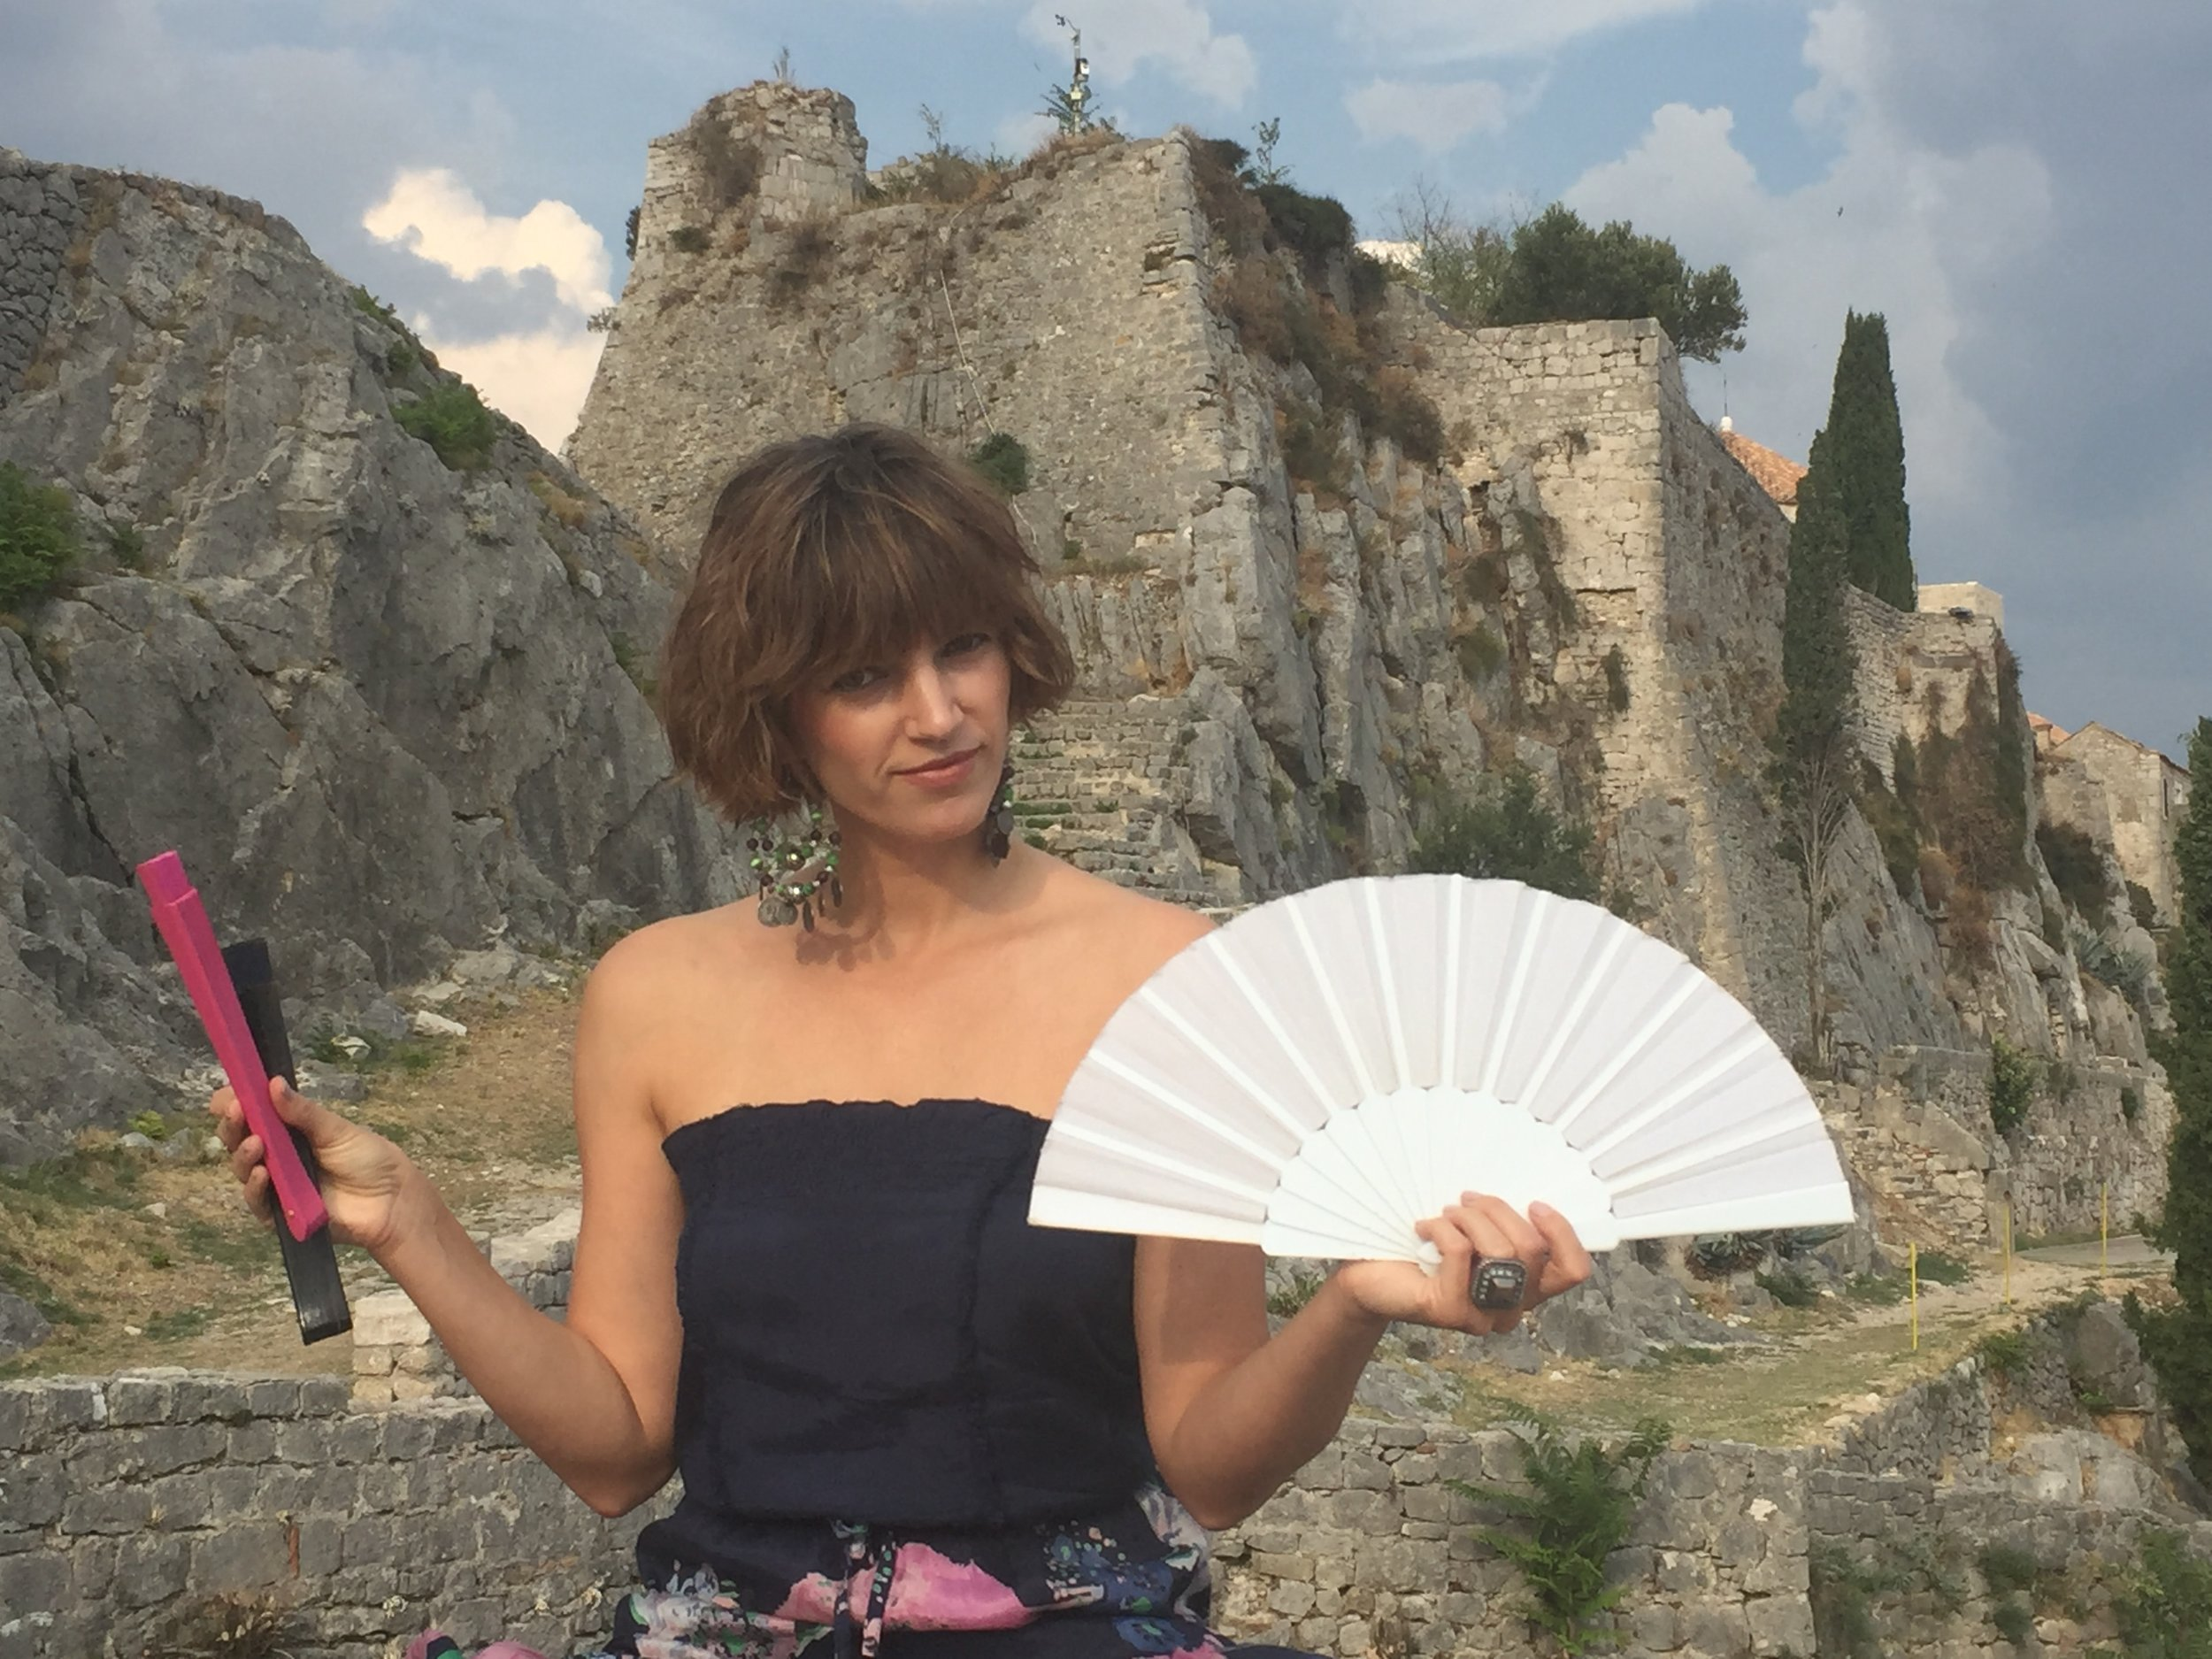 Hand fans at the Castle